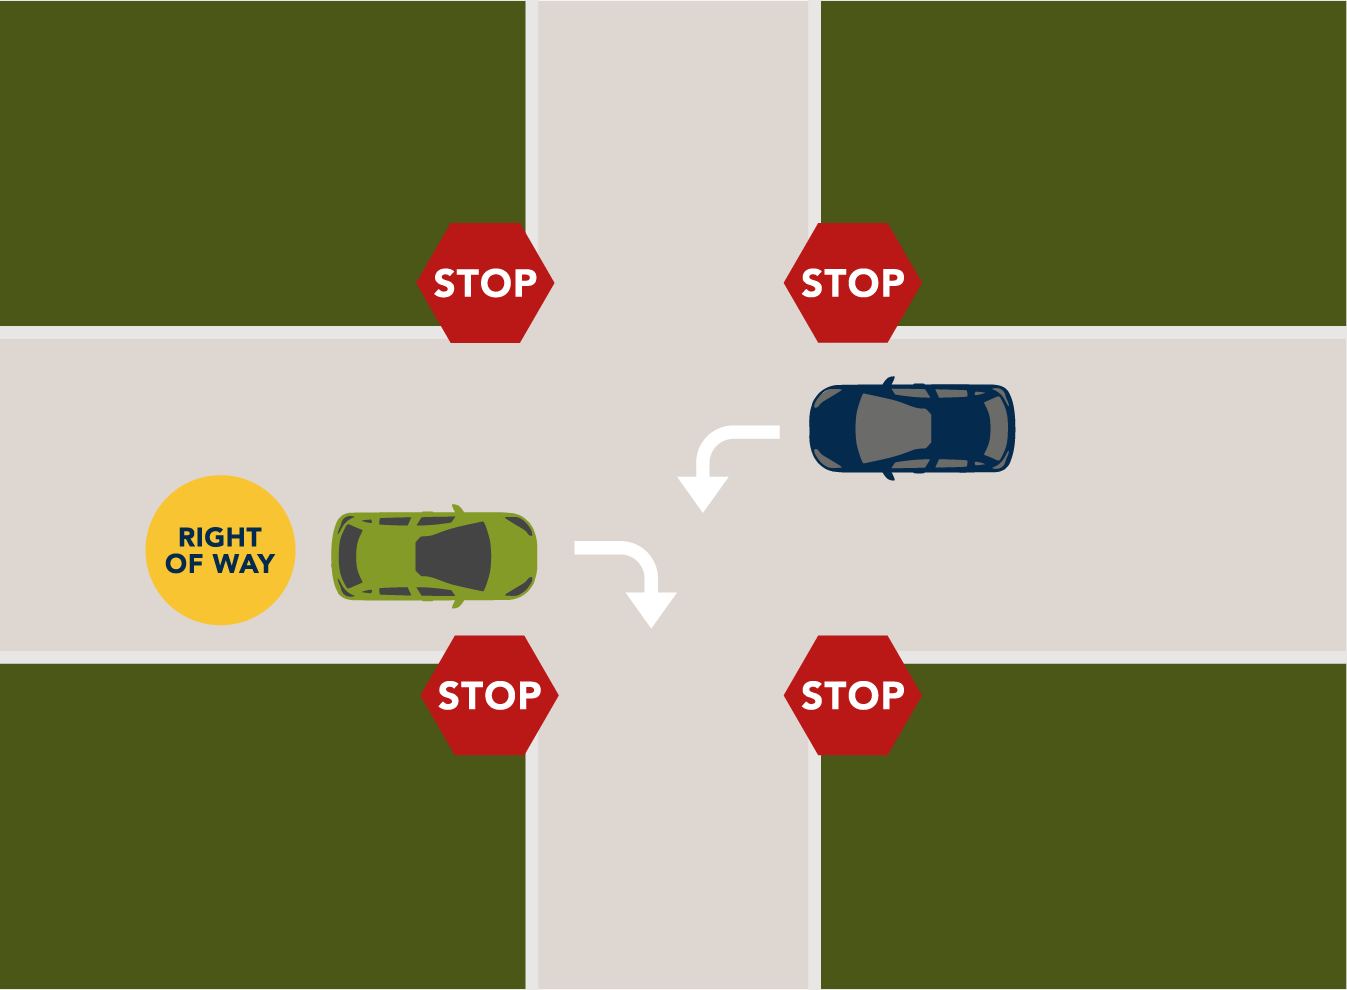 Driver turning right and closest to the right has right of way.